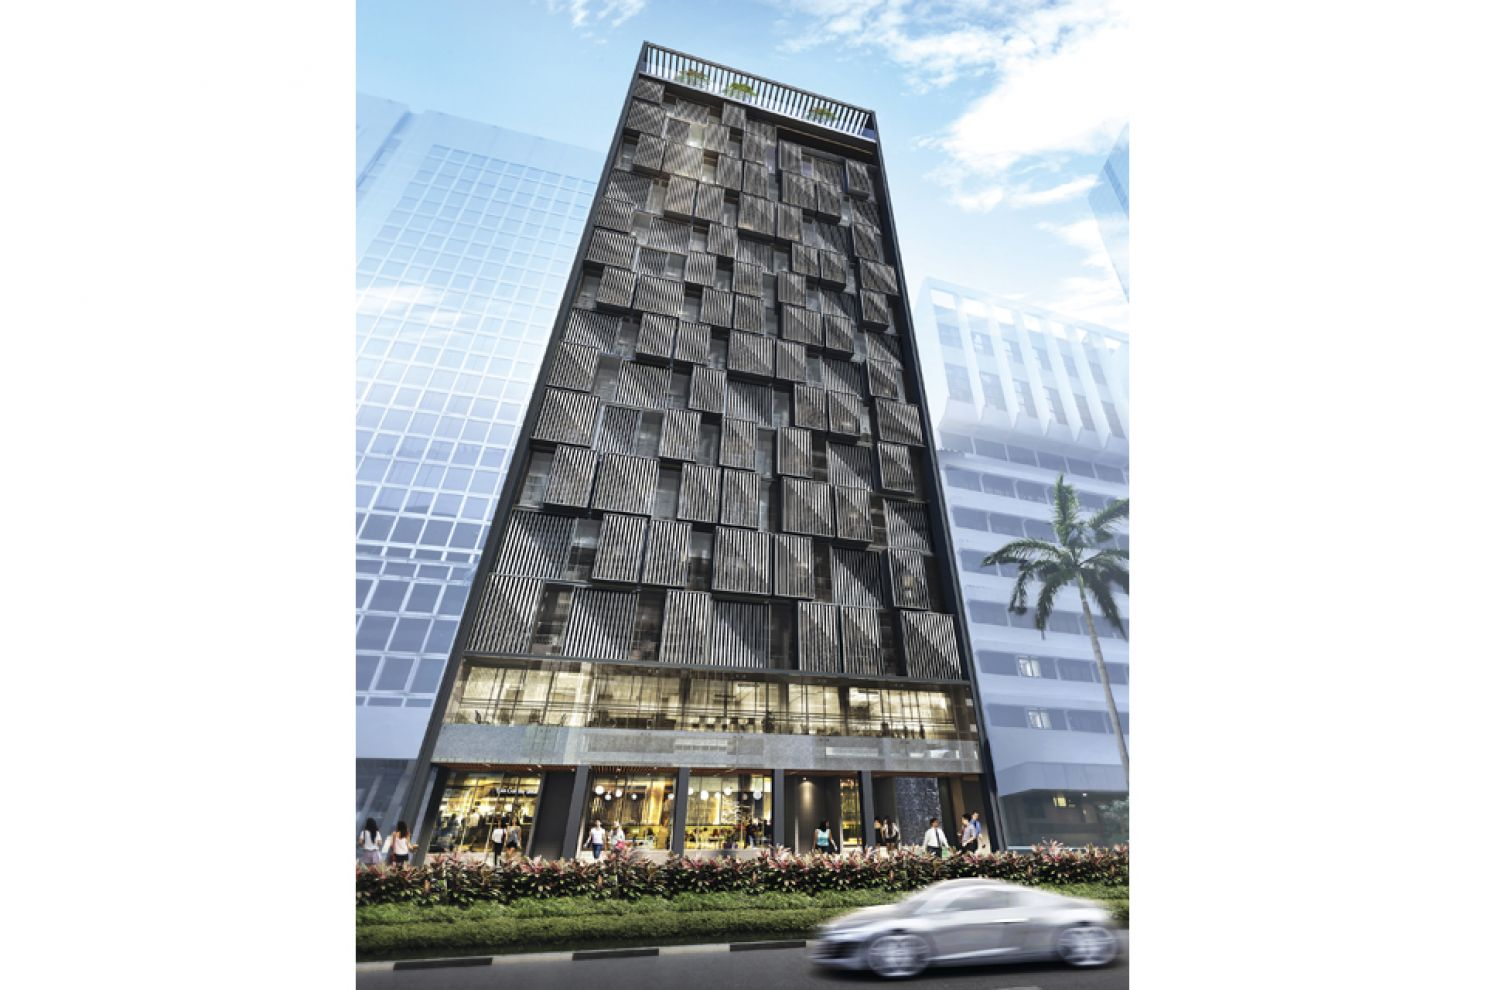 singapore-office-rental-sale-20170425-bt-139-cecil-street-for-sale-210-million-pic